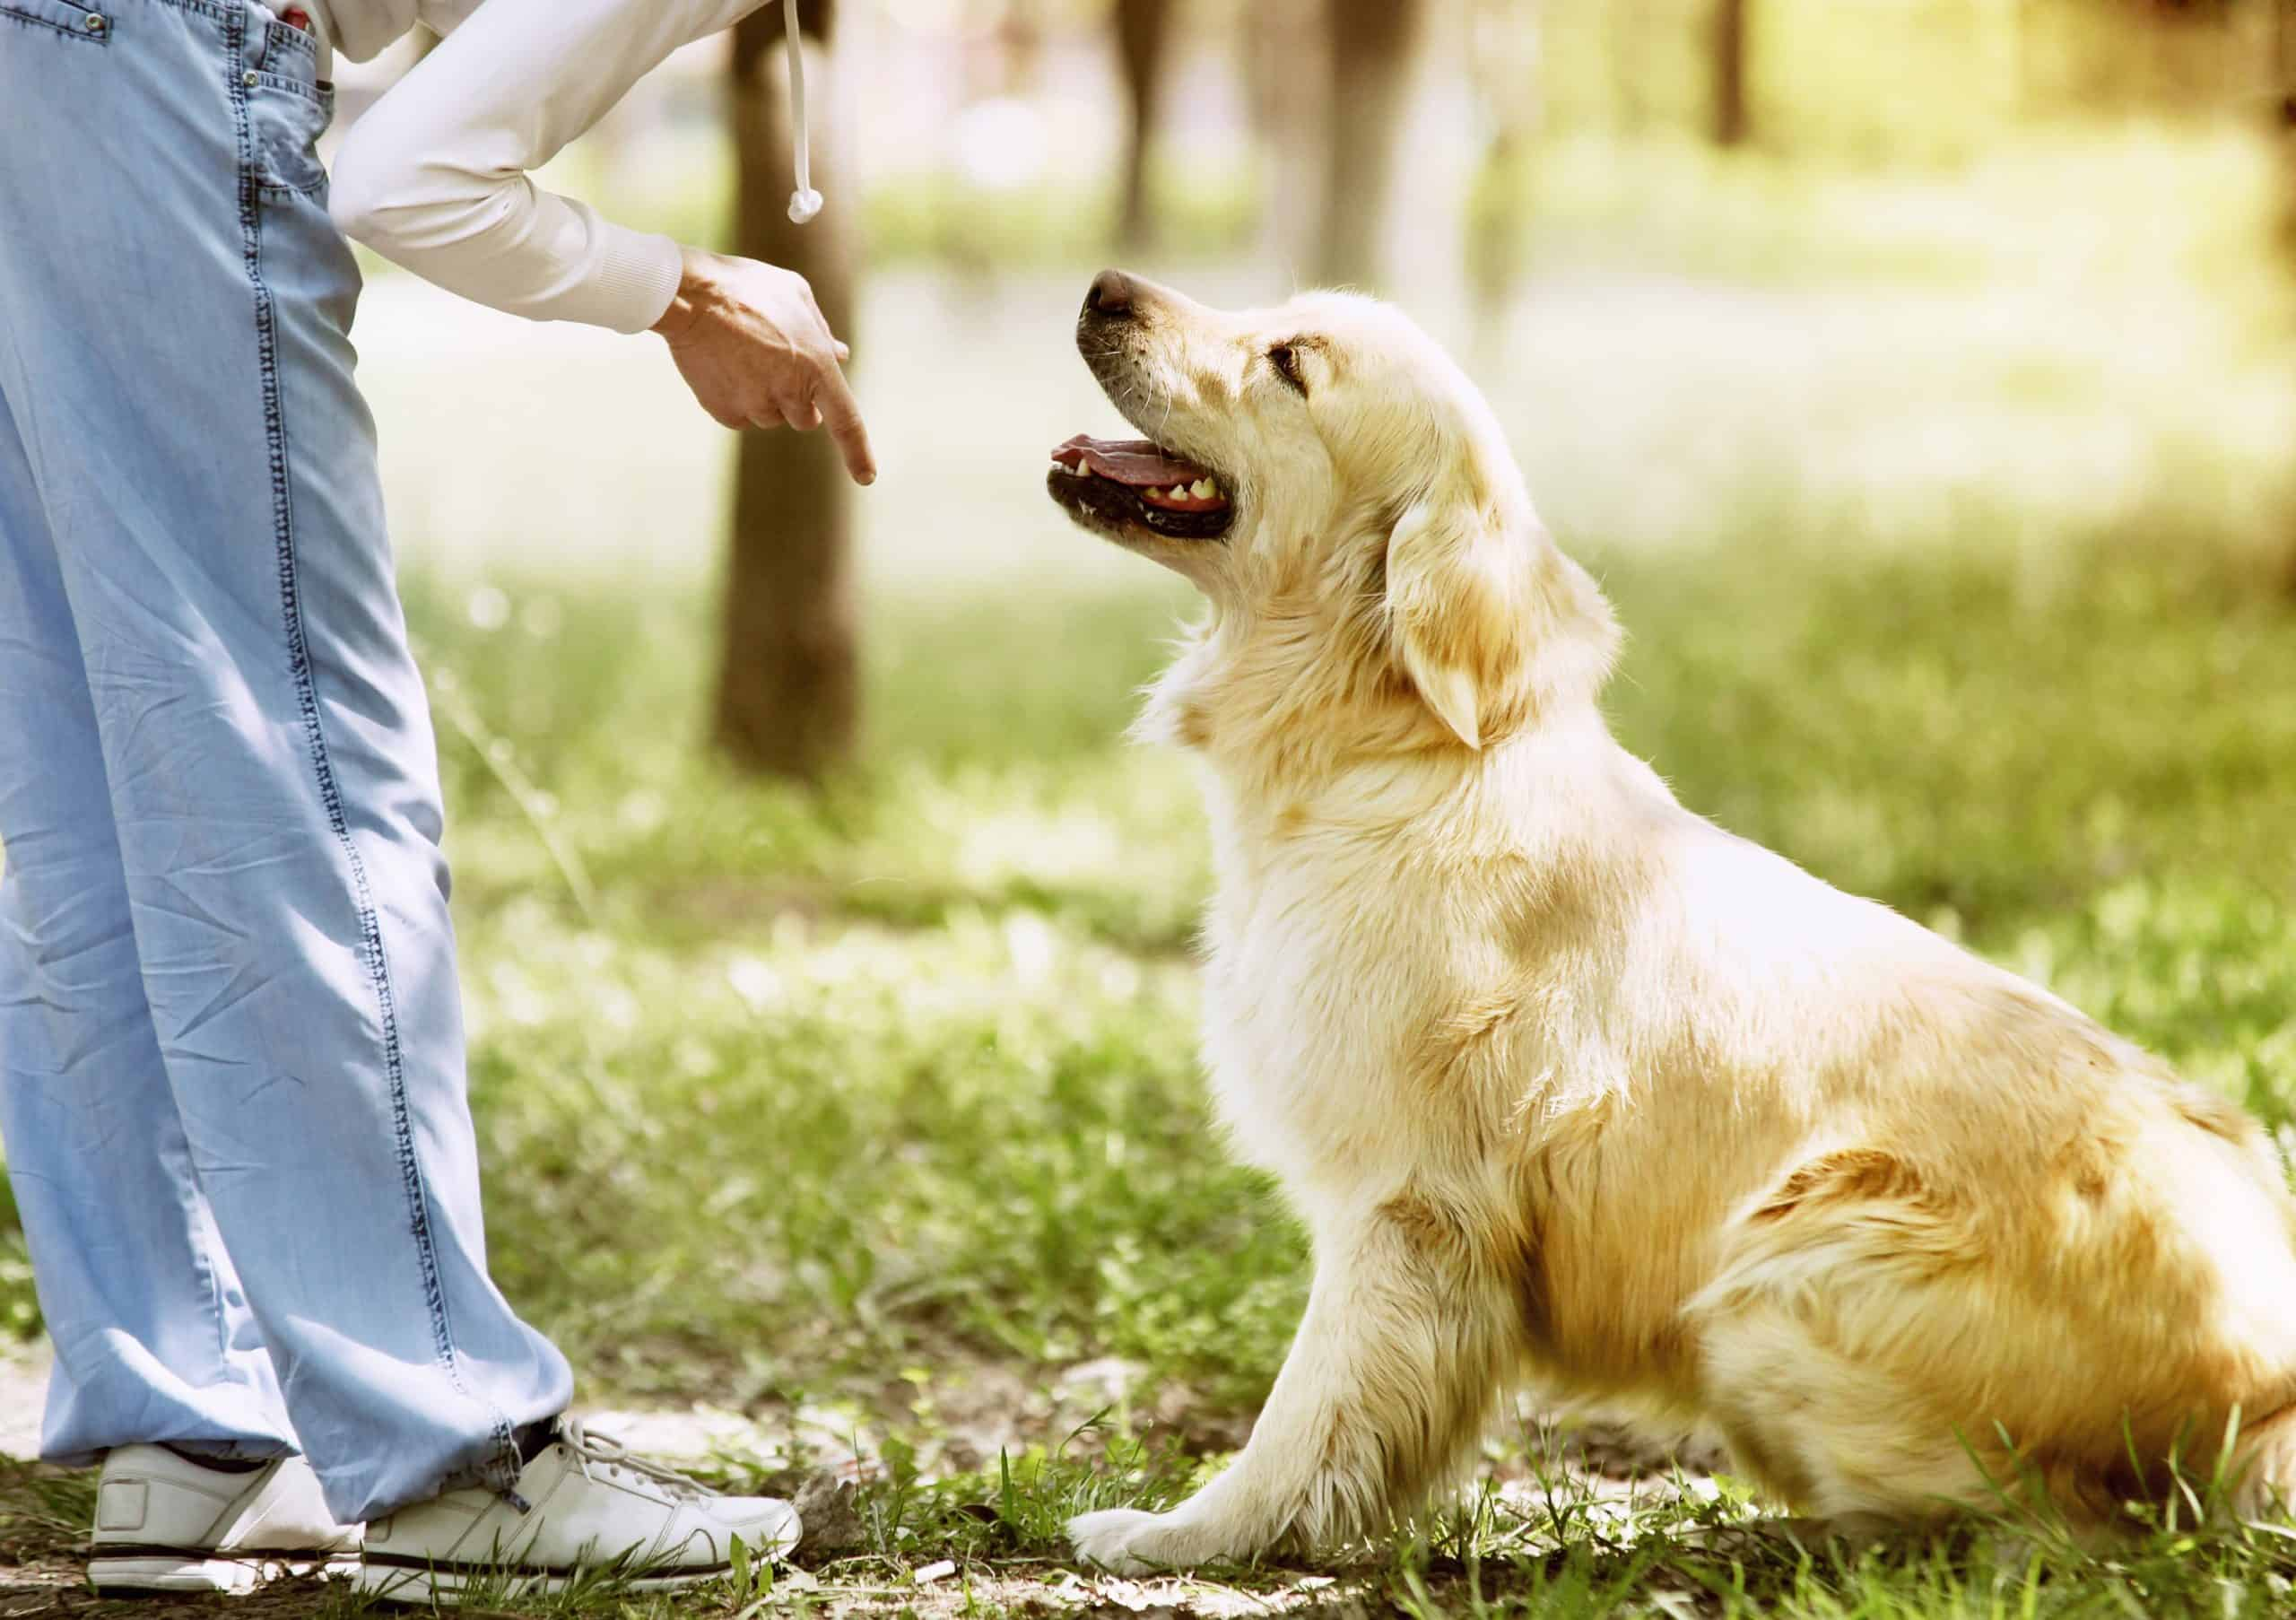 Woman works to teach a Golden Retriever puppy to sit. For successful Golden Retriever training, incorporate training daily using short, fun exercises and lots of healthy treats.